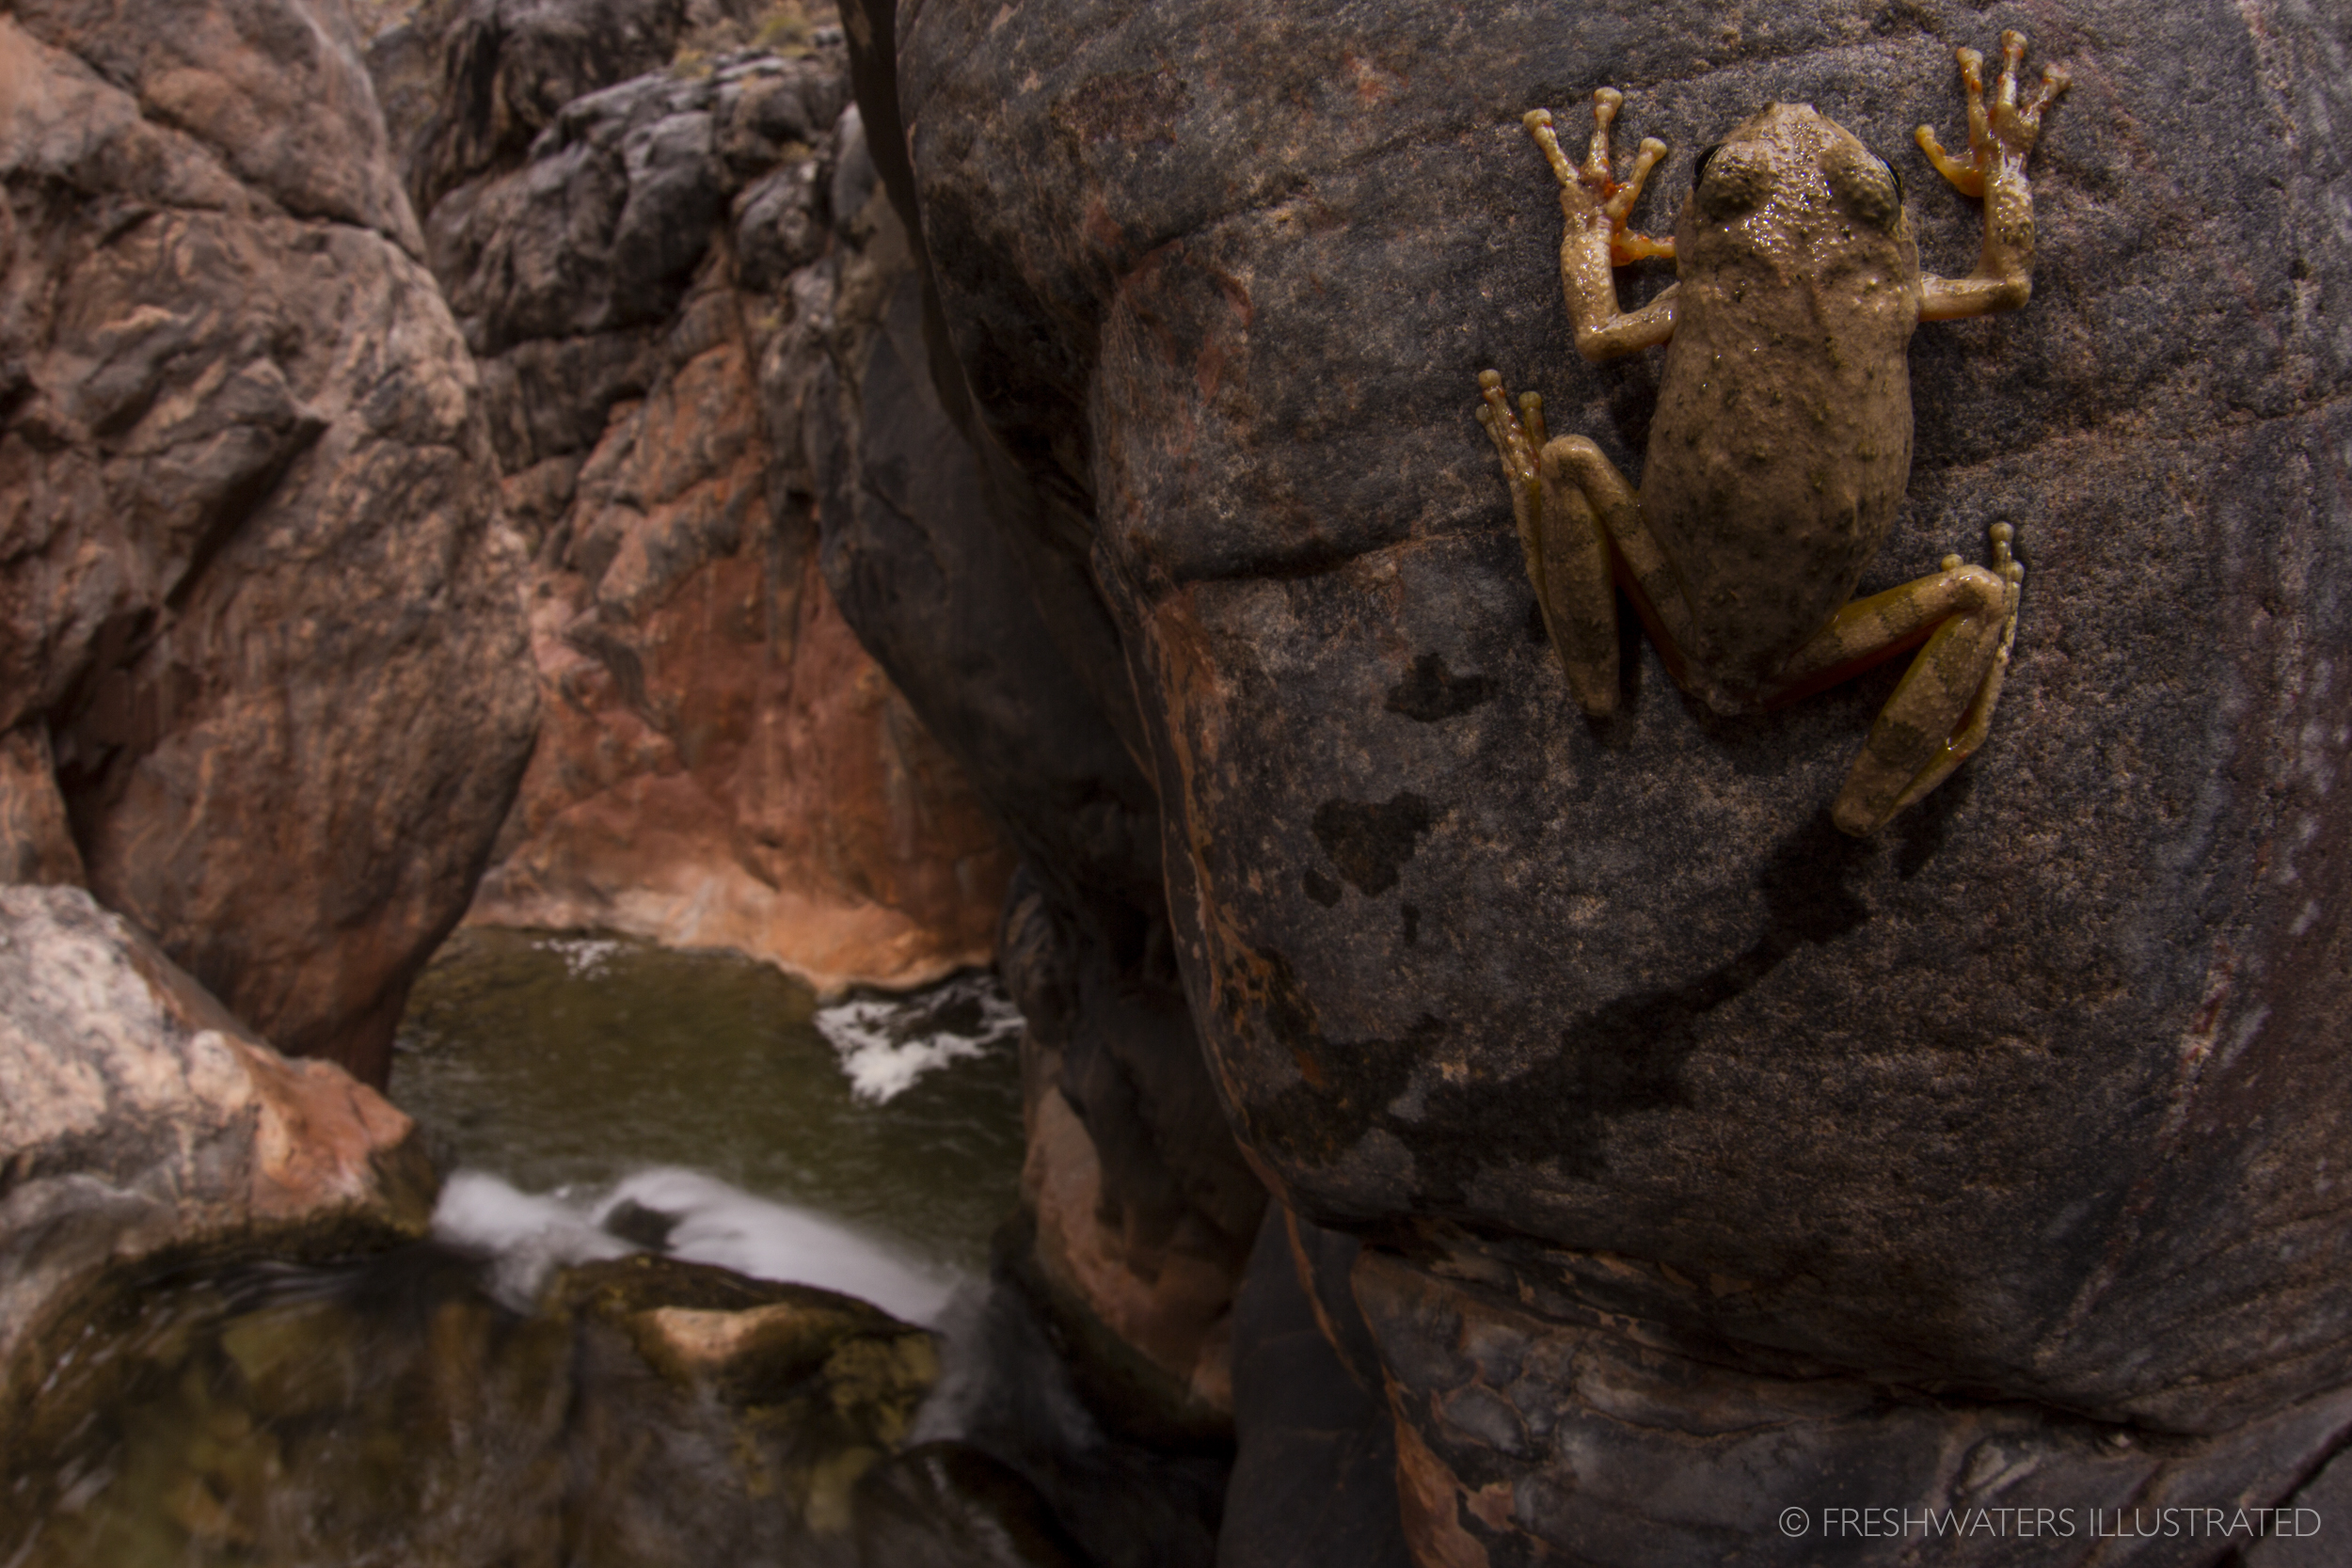 Canyon tree frog (Hyla arenicolor) Grand Canyon, Arizona  www.FreshwatersIllustrated.org   http://www.gcmrc.gov